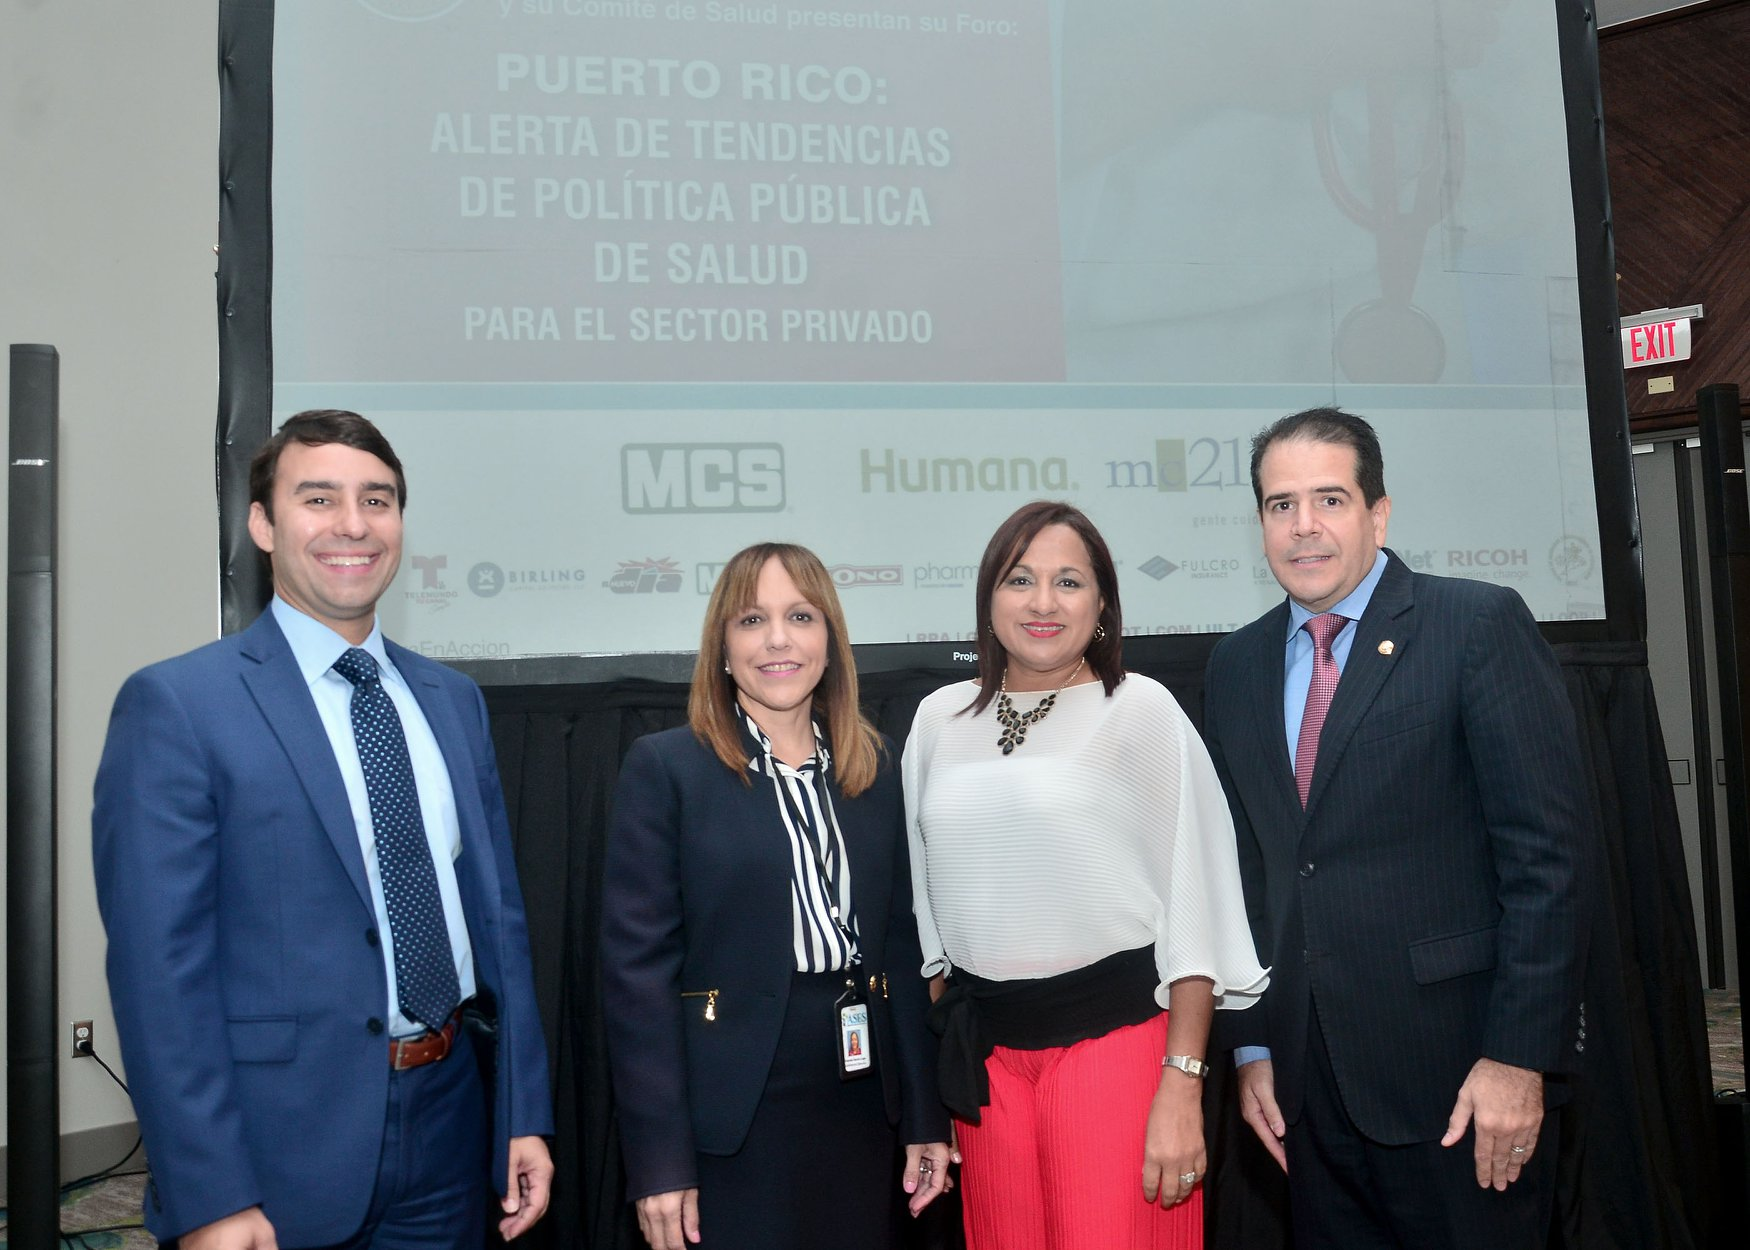 "Nayda Rivera, Executive Director of ASES, Yolanda García-Lugo, and Alejandro Drevón, General Manager of Abbvie.Abarcan Nayda Rivera was selected to lead the panel on ""Puerto Rico: Public Health Policy Trends Alerts for the Private Sector"" at the 2019 Puerto Rico Health Forum"